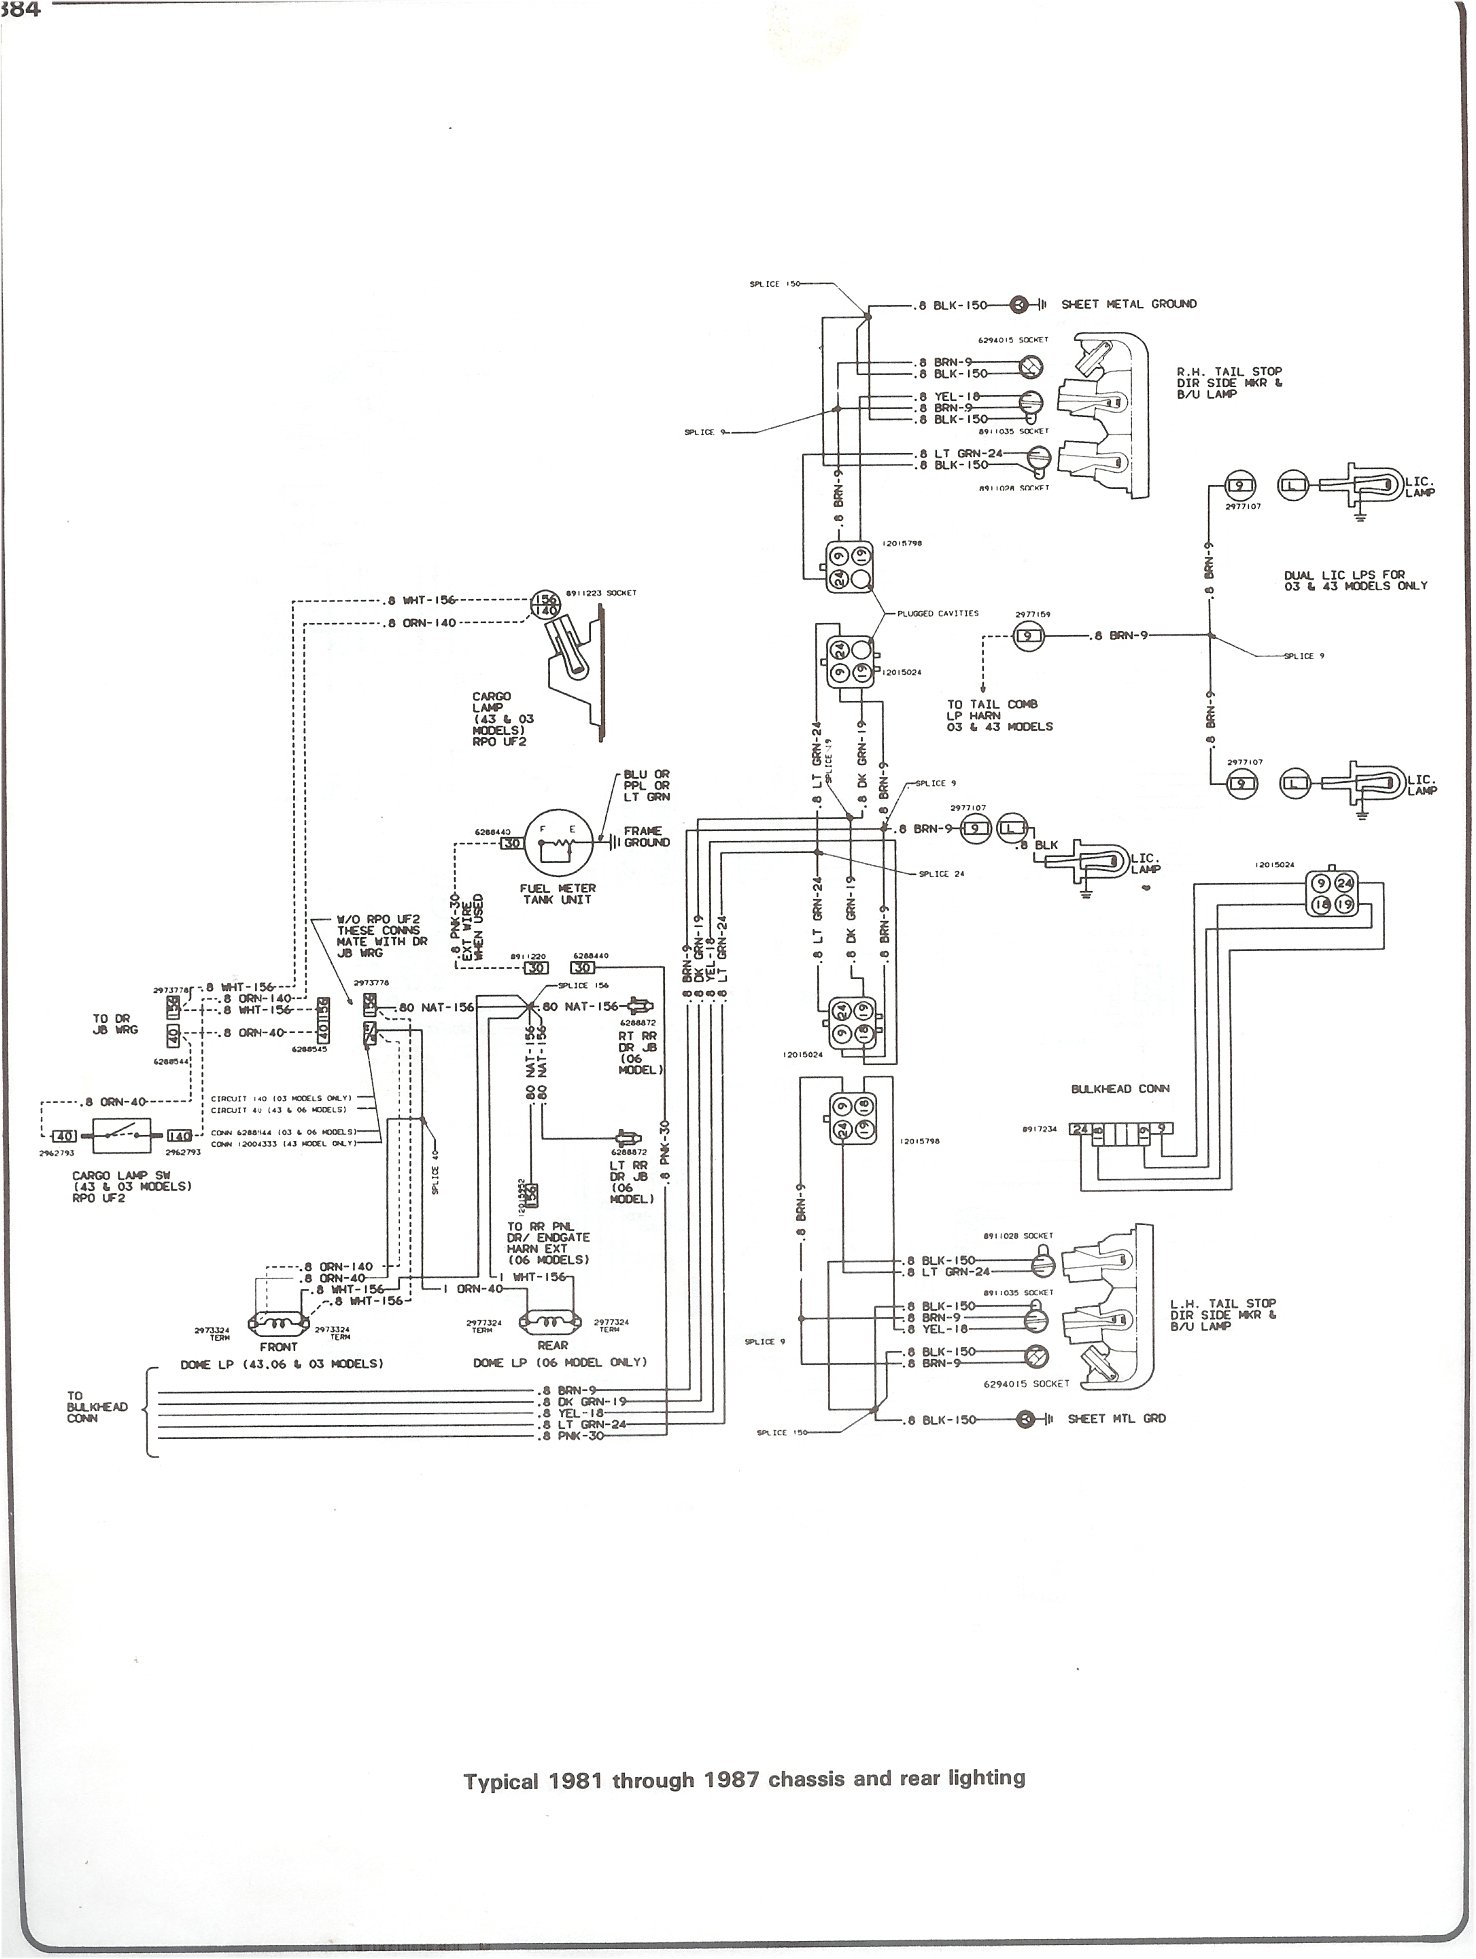 81 87_chass_rr_light complete 73 87 wiring diagrams 1970 Chevy C10 Fuse Box Diagram at gsmx.co